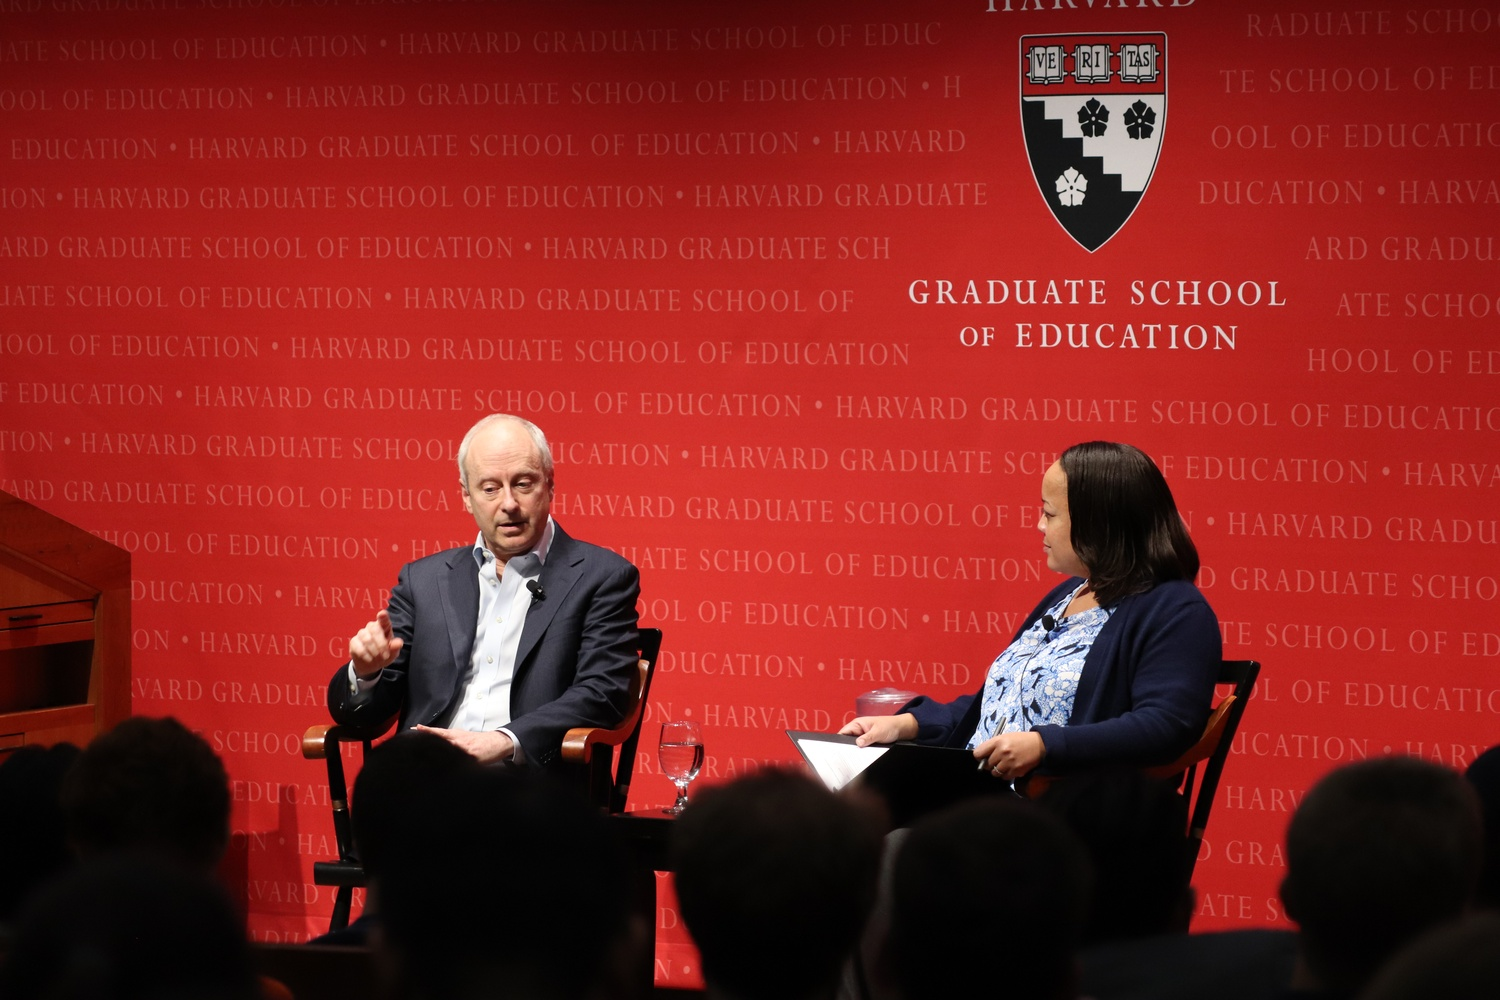 Bridget Terry Long, a Professor of Education and Economics leads a discussion with Professor Michael  J. Sandel Thursday night in Longfellow Hall.